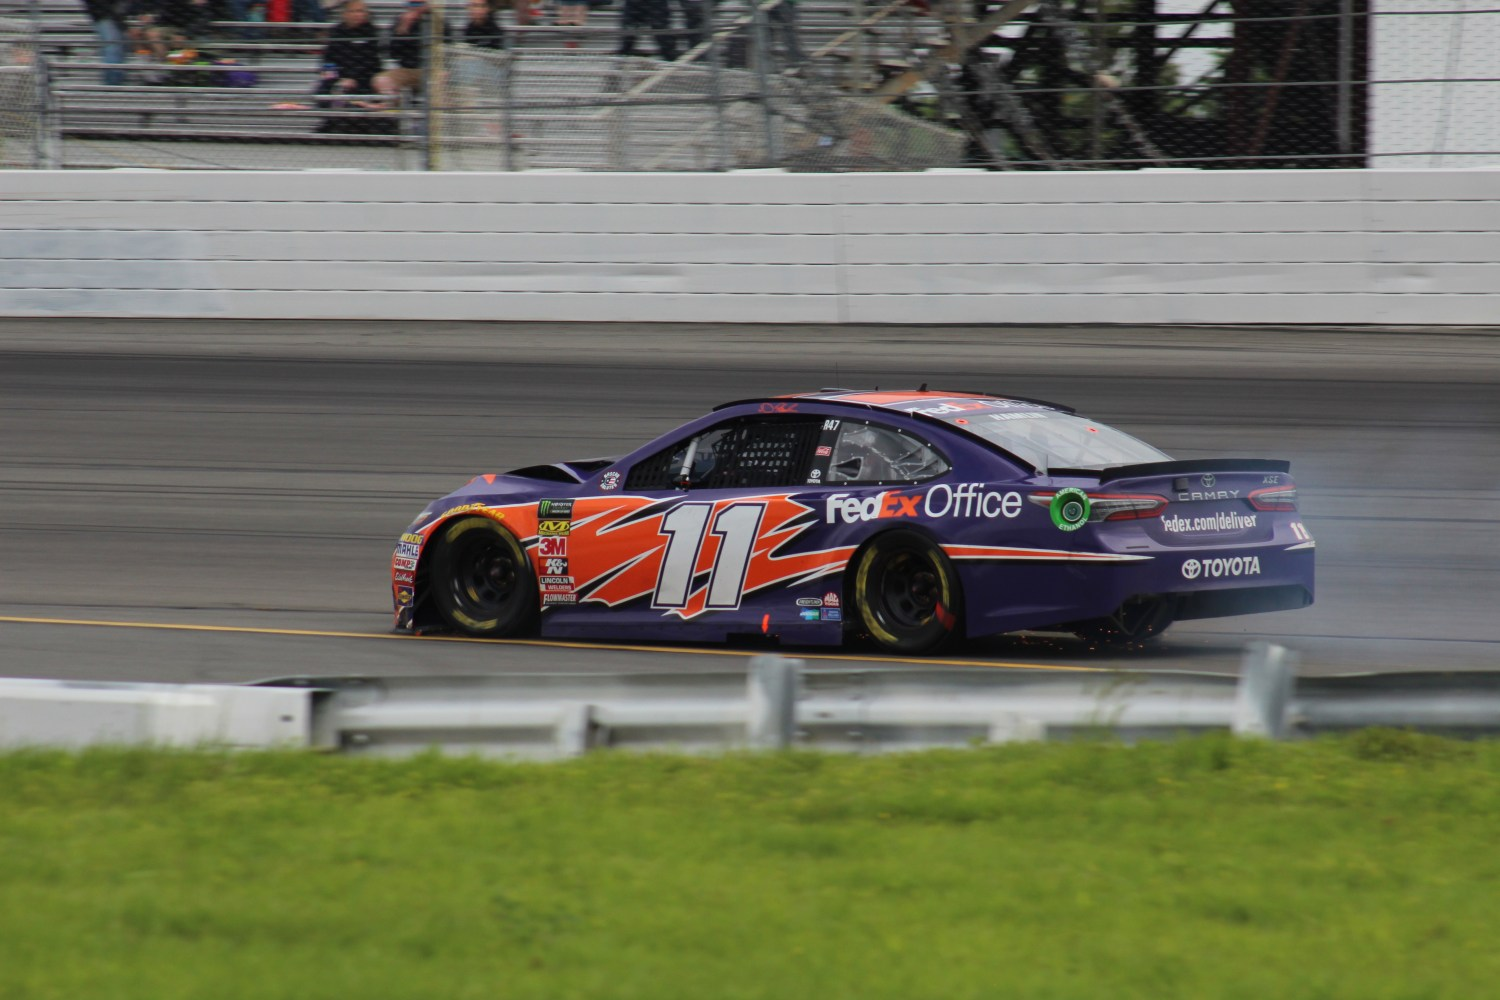 Denny Hamlin drives a damaged No. 11 back to the pits.